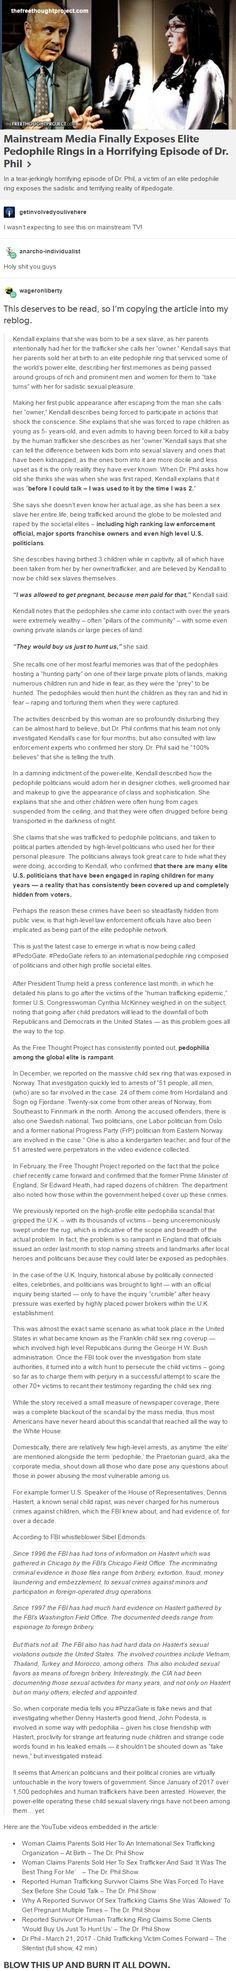 """In an exclusive interview seen by millions across the United States, Dr. Phil exposed the deadly secretive, and the highly organized world of elite pedophilia — with a former child sex slave going by the name of """"Kendall"""" describing being literally born into, and growing up in, the world of elite sexual slavery. Read more at http://thefreethoughtproject.com/elite-pedophile-ring-exposed-dr-phil/#qG8EMOldGRYLvPX7.99"""